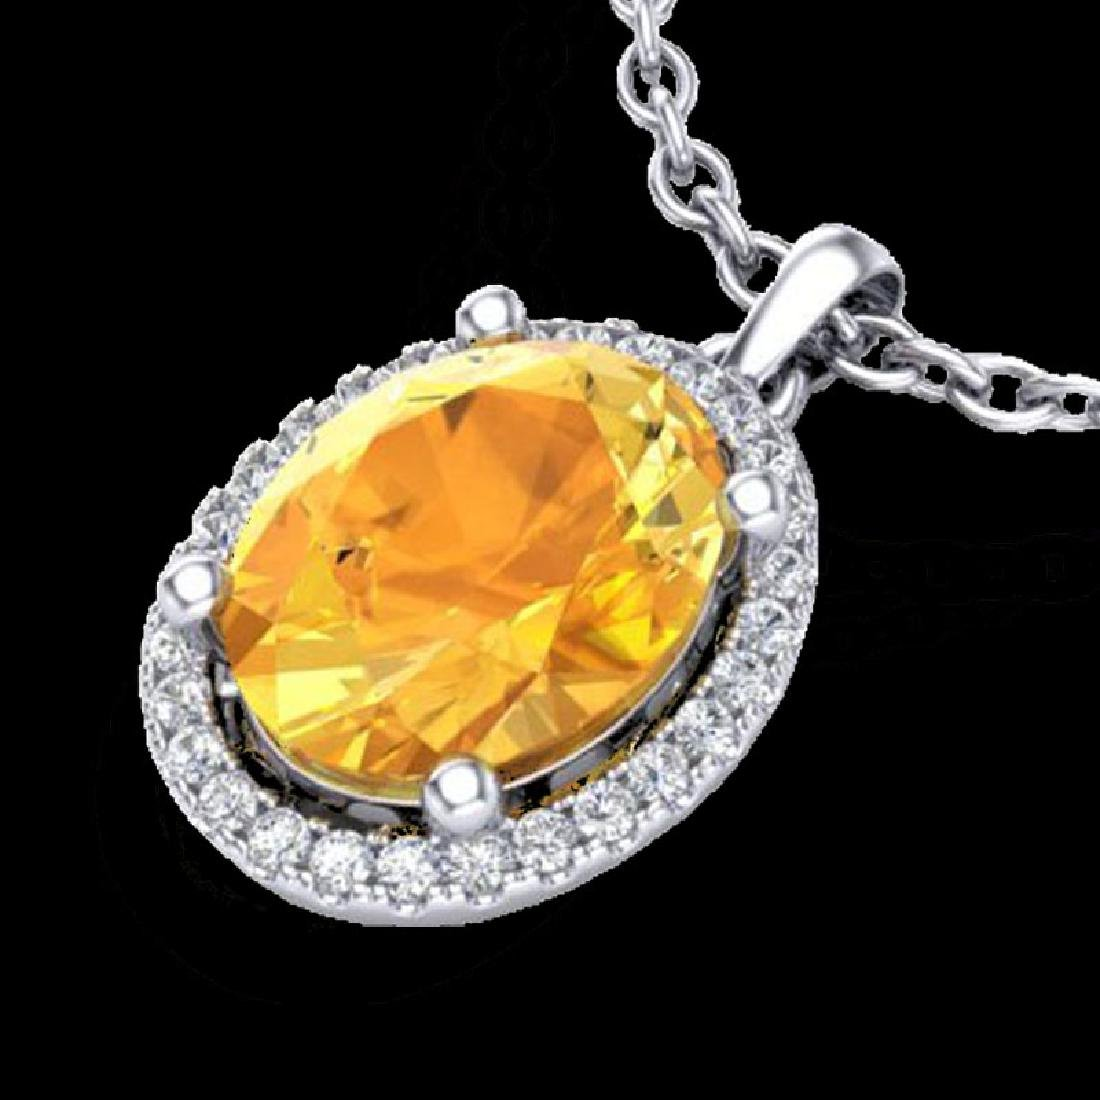 2.50 CTW Citrine & Micro Pave VS/SI Diamond Necklace